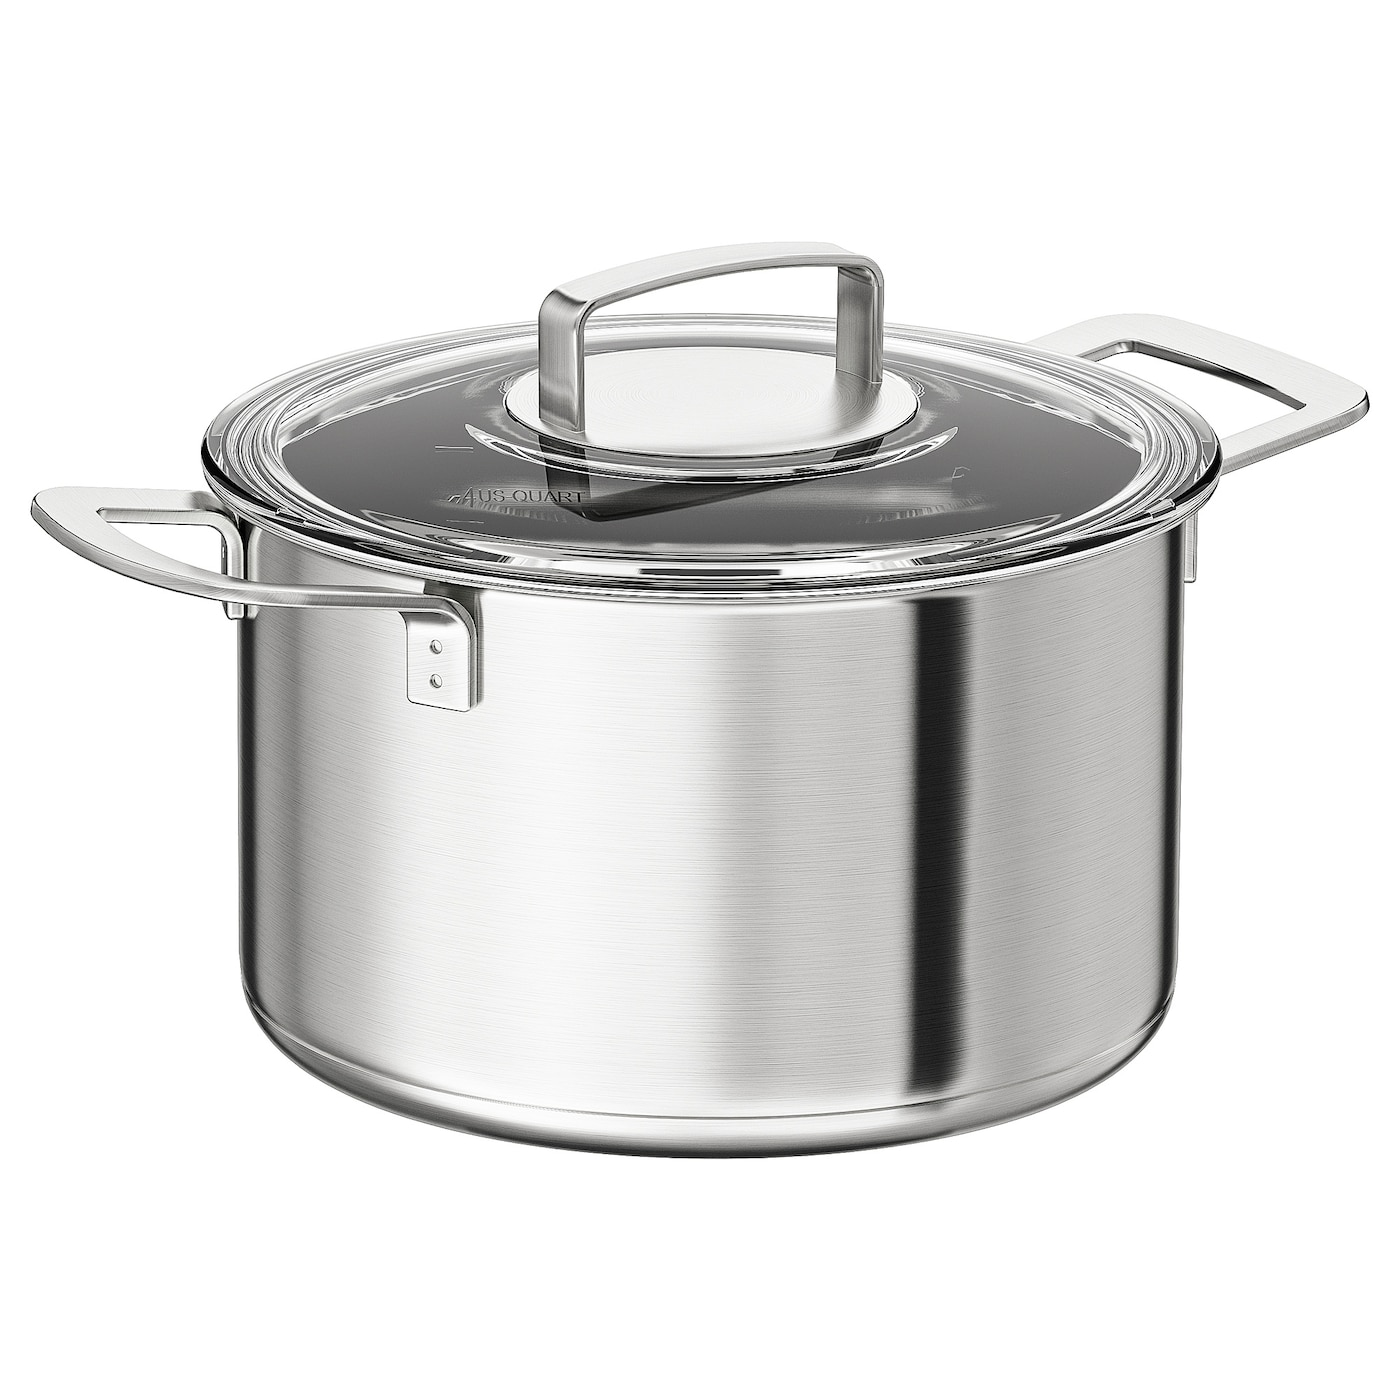 Pot With Lid Stainless Steel Gl